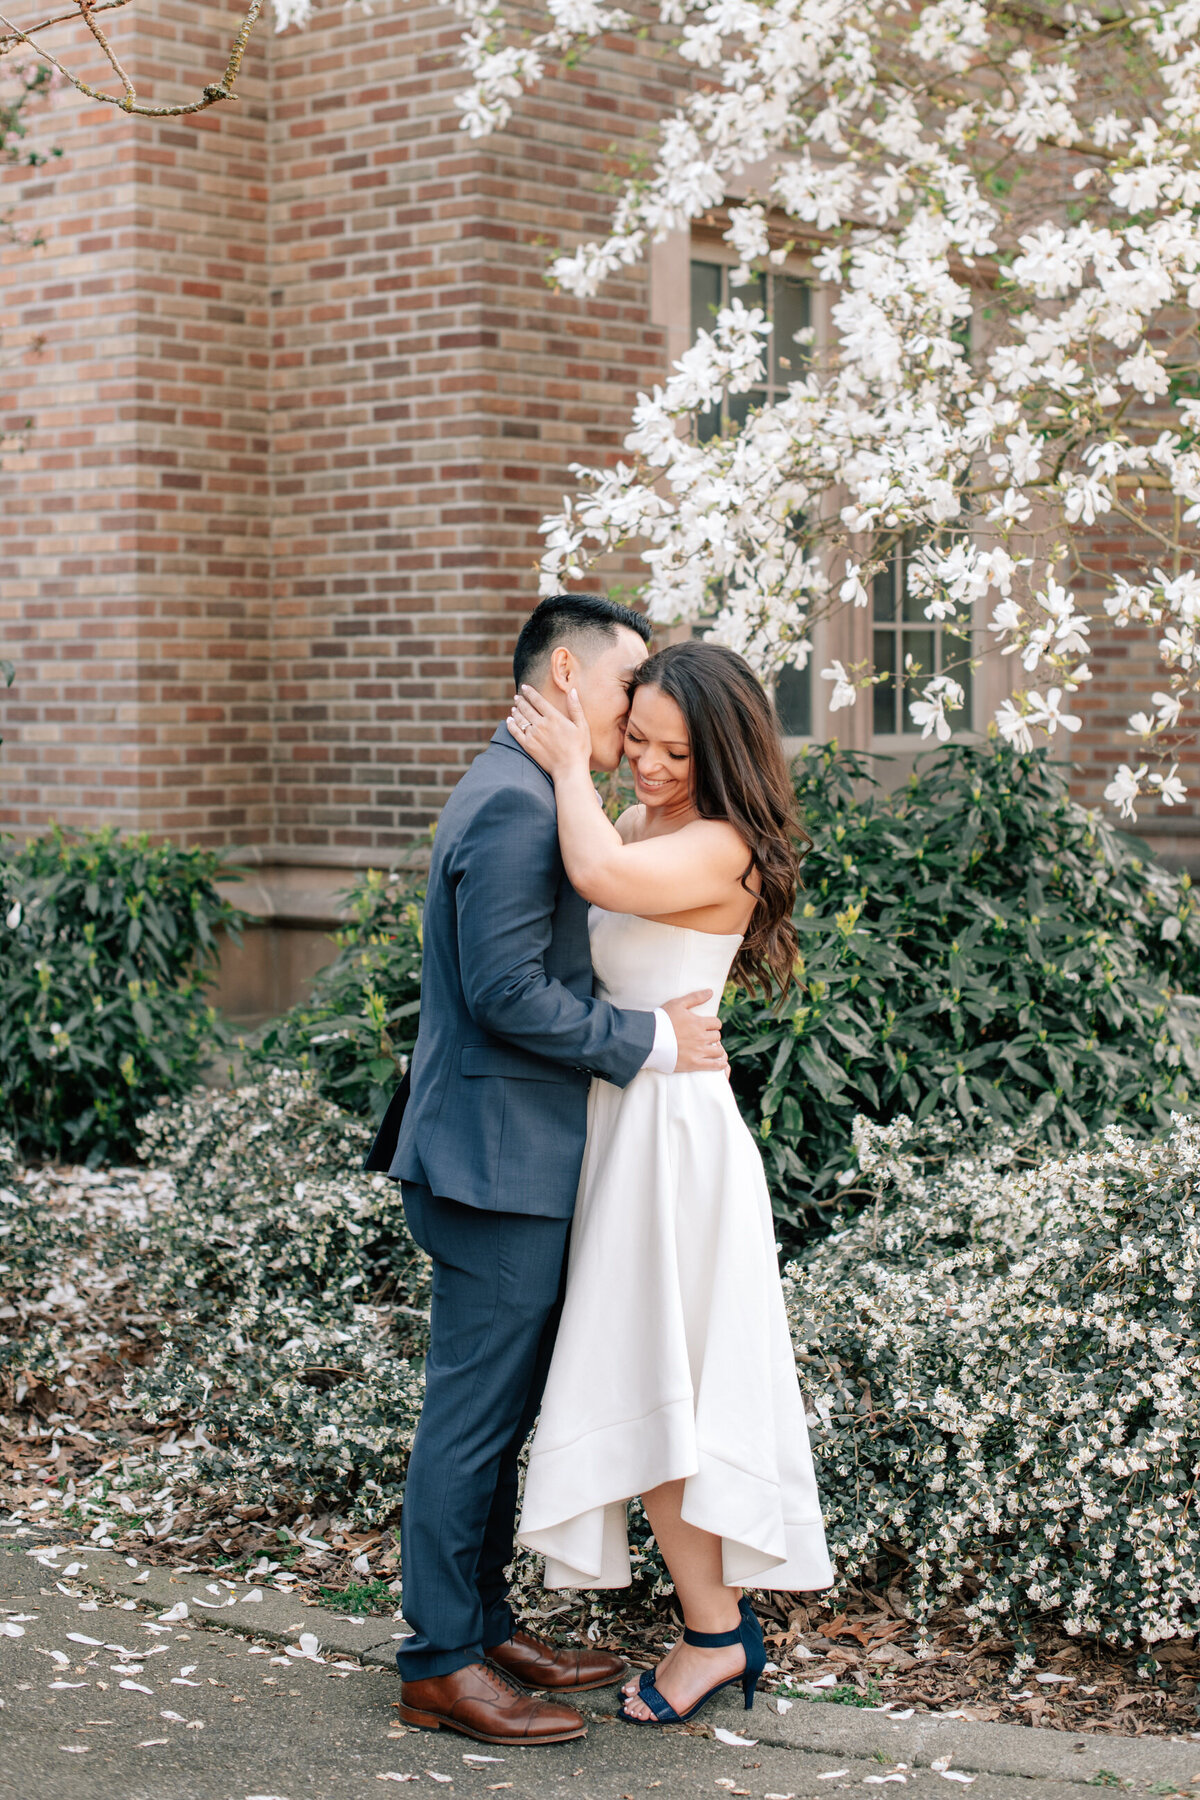 Groom kissing bride on cheek during spring engagement at UW